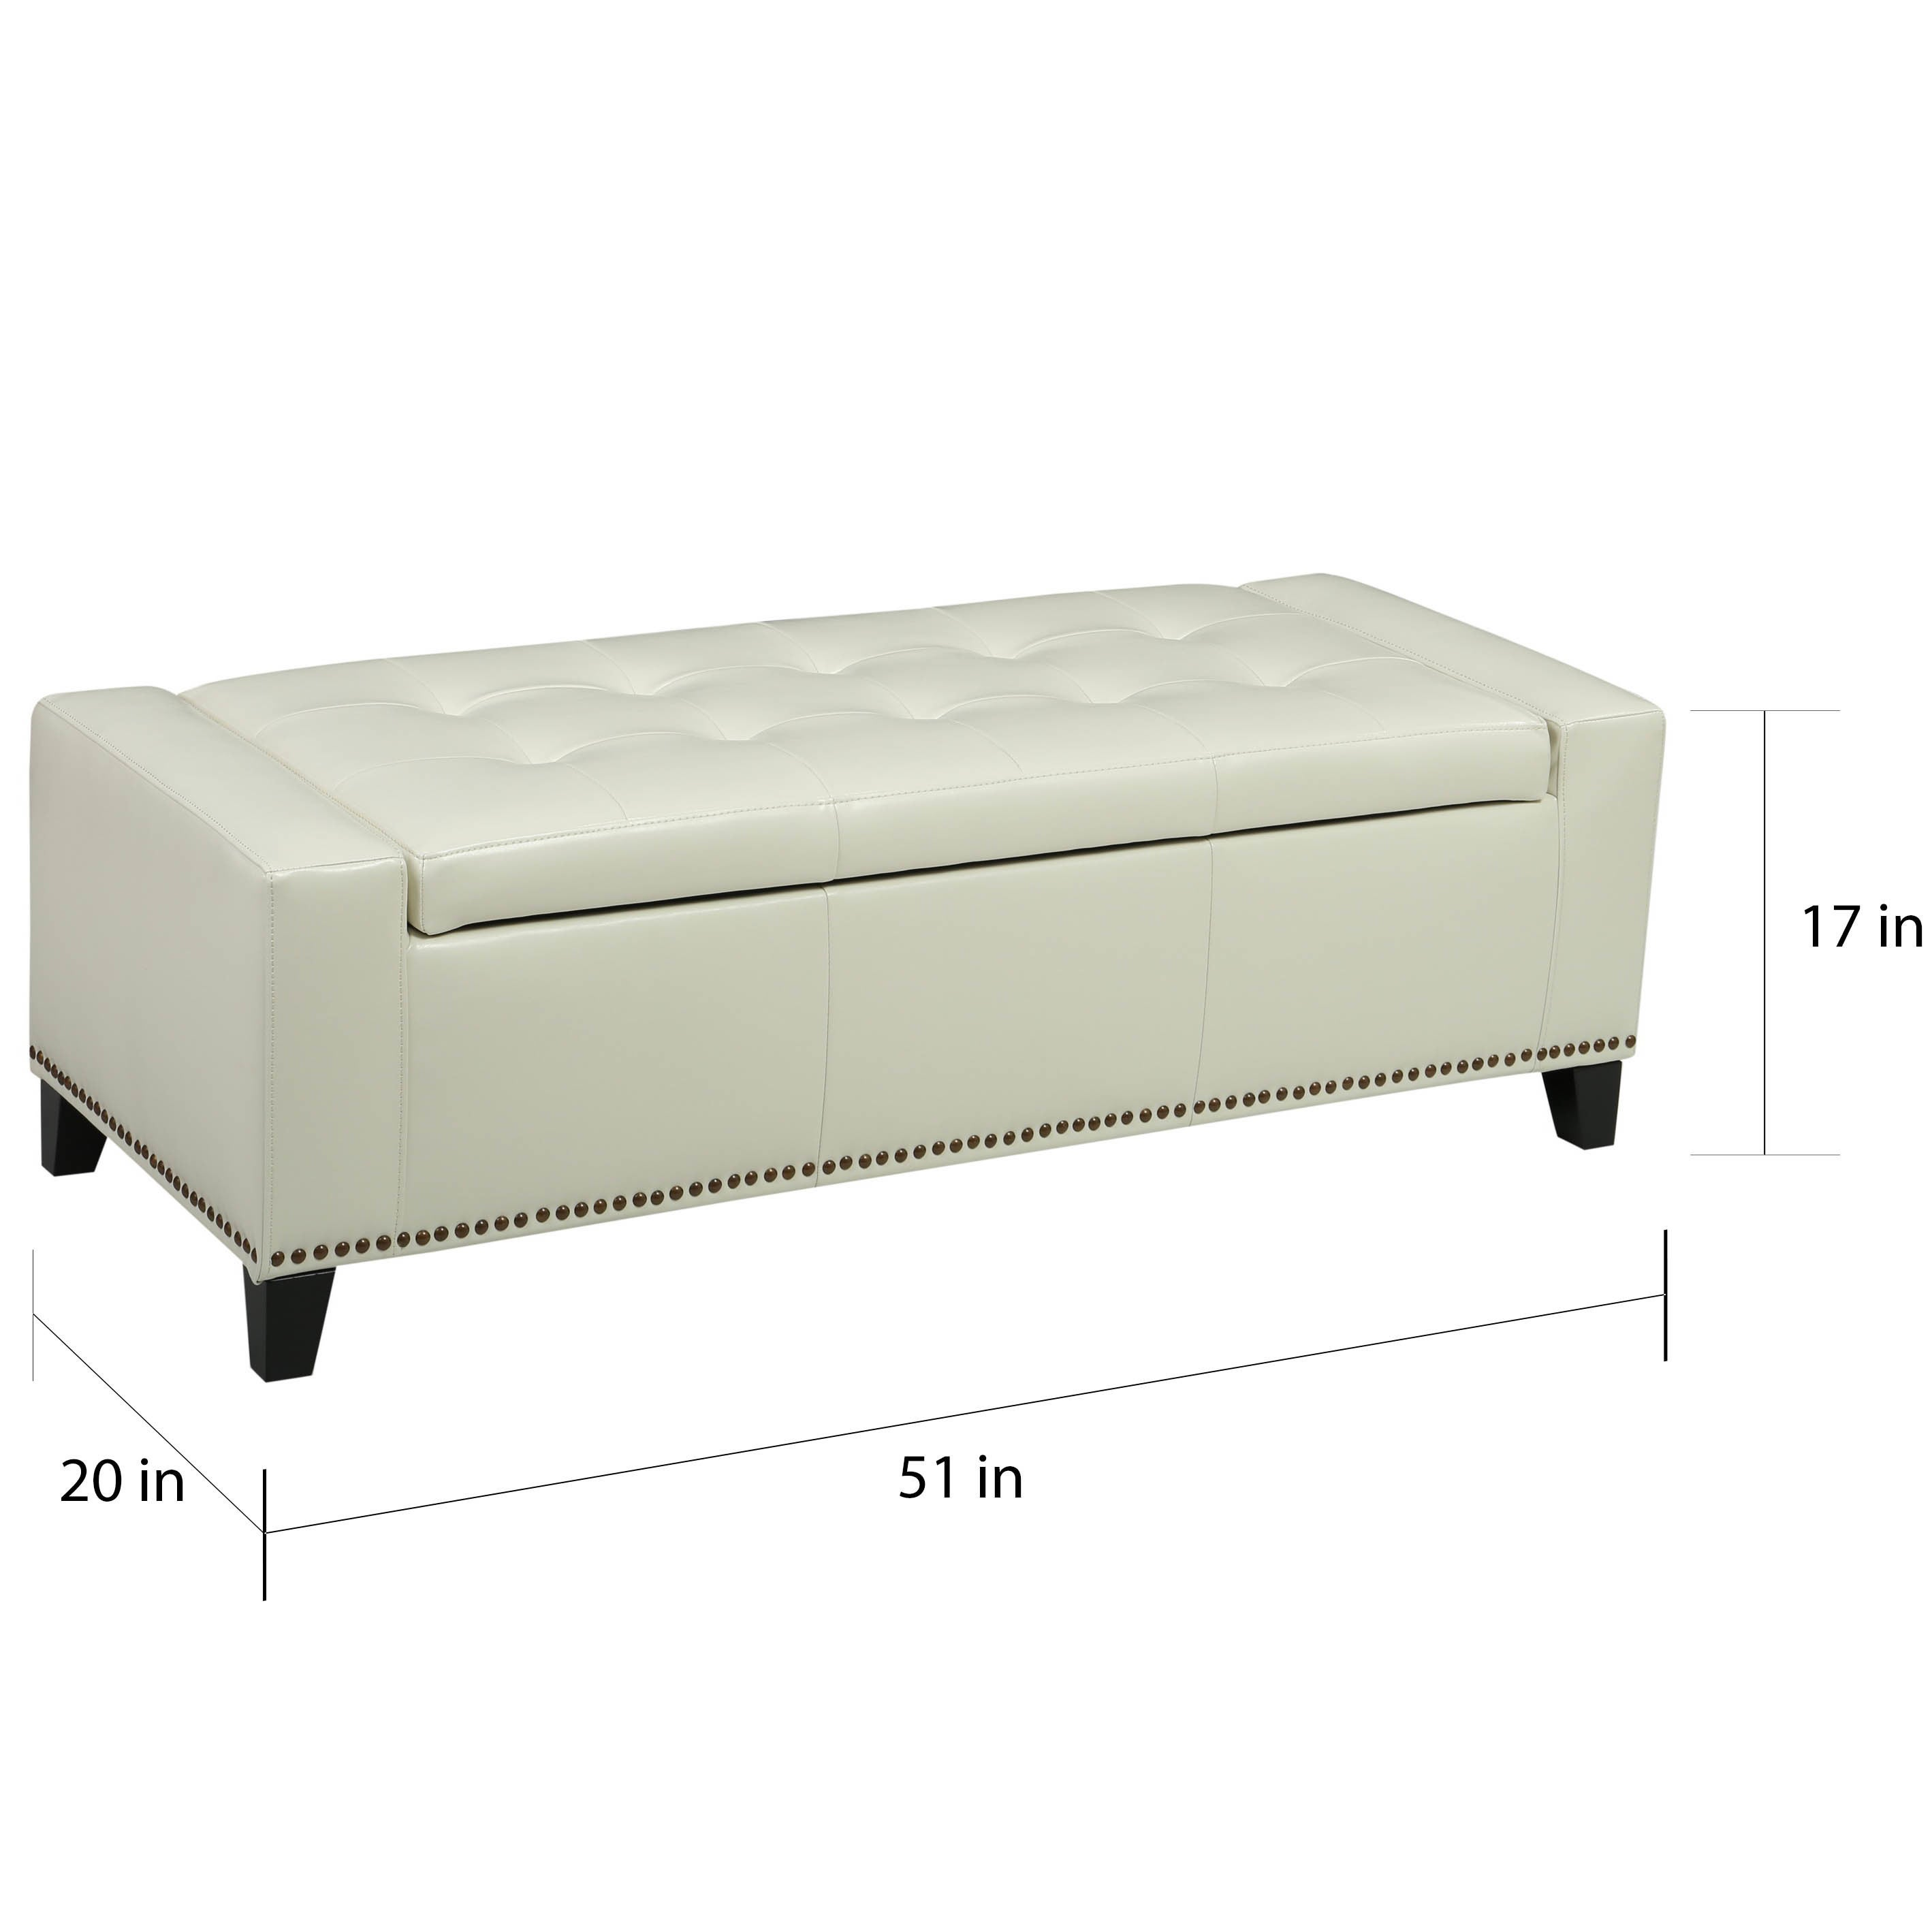 great bedroom amazon ottoman for furniture with tufted storage safety kitchen bench upholstered room hinge com living cushion linen dp grey and